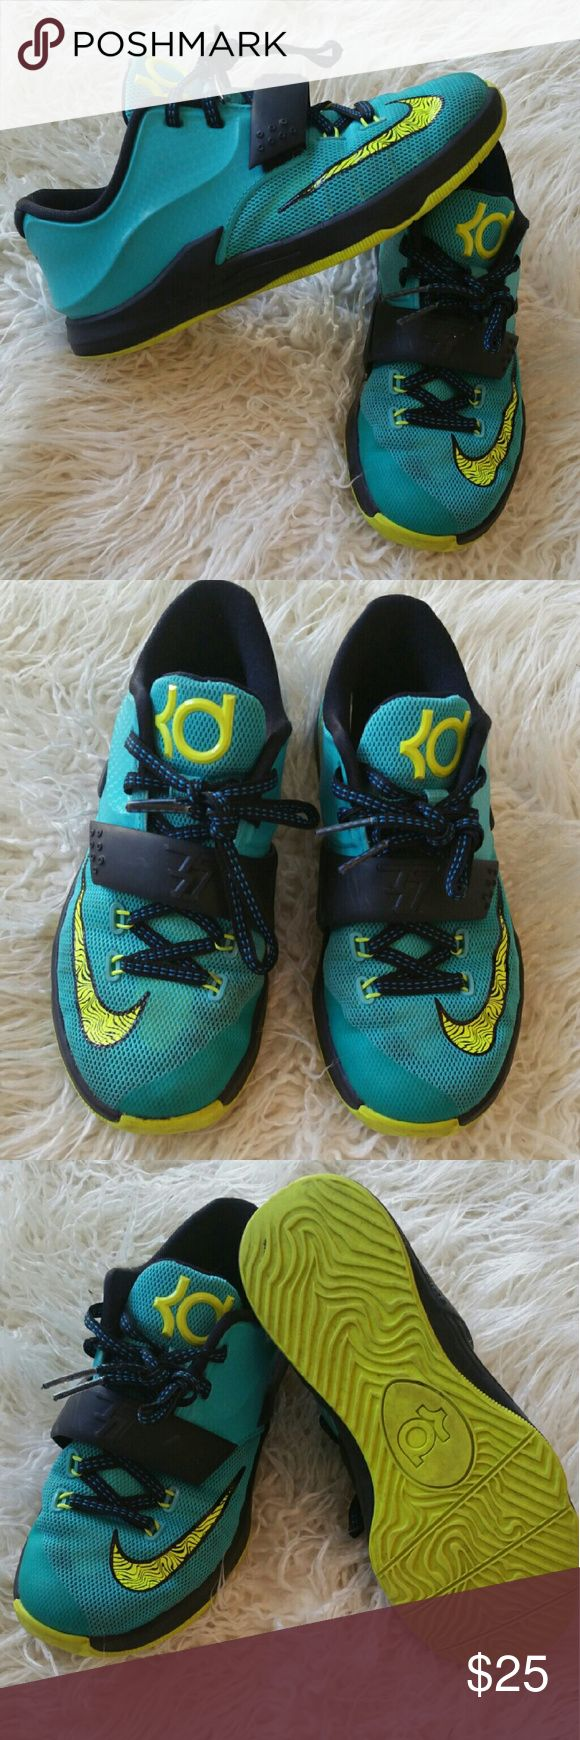 Kd sneakers (kids) Good conditions  size 1y Nike Shoes Sneakers